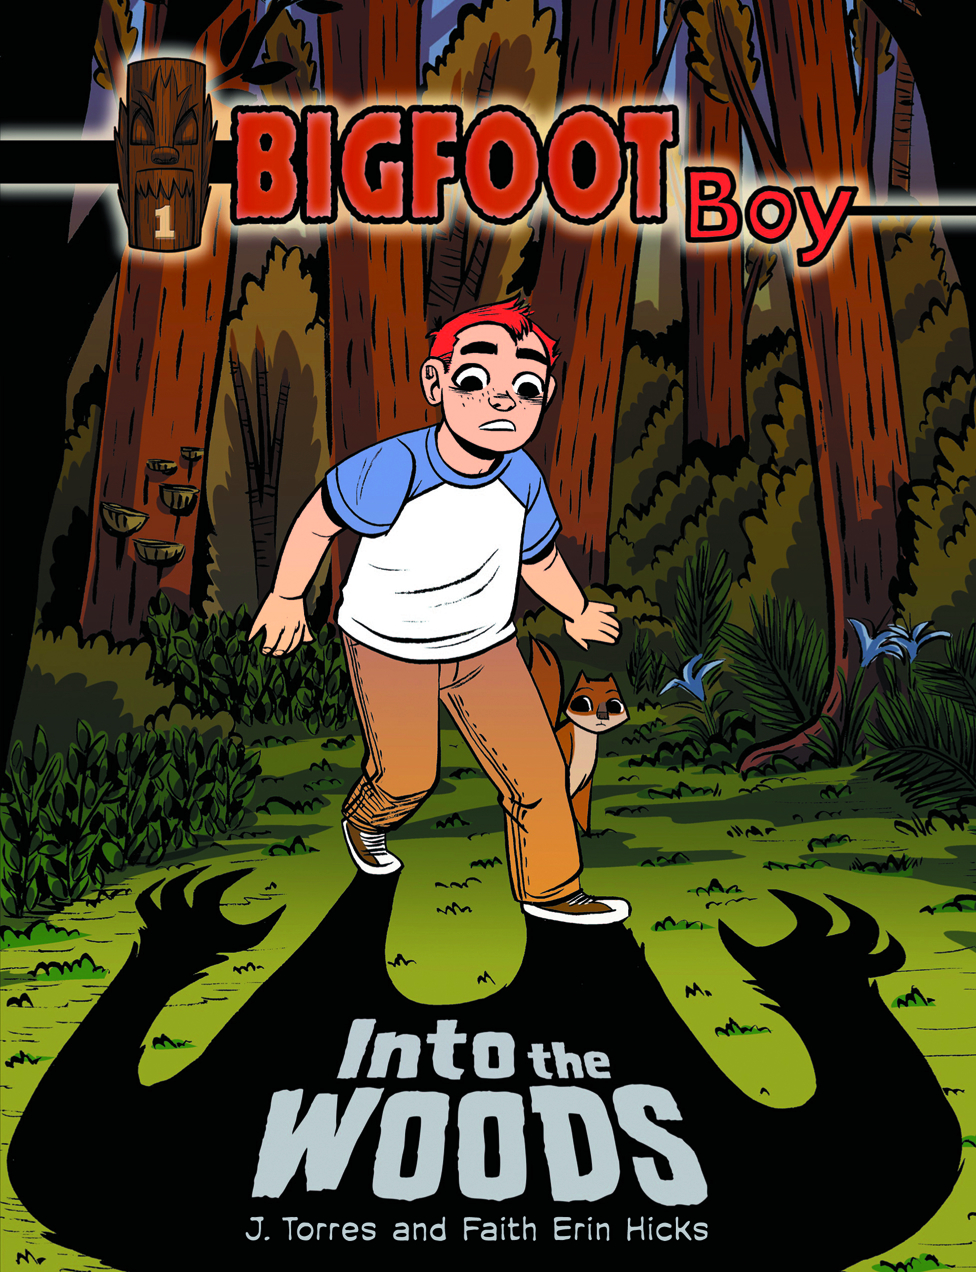 BIGFOOT BOY GN VOL 01 INTO THE WOODS